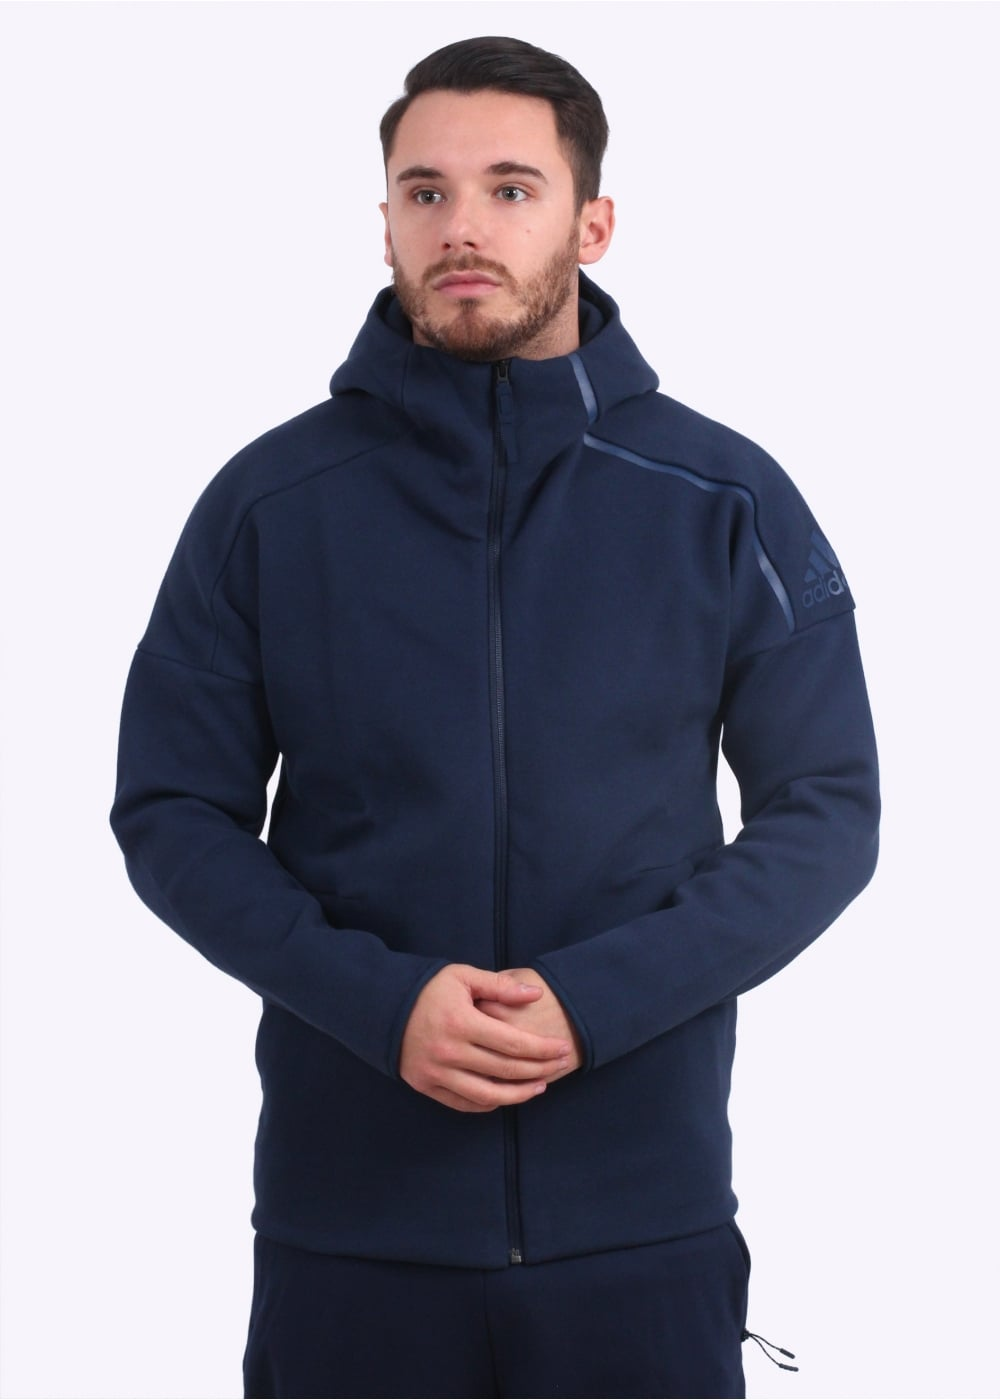 Hoody Navy Apparel Originals Adidas Zne b6gf7Yy